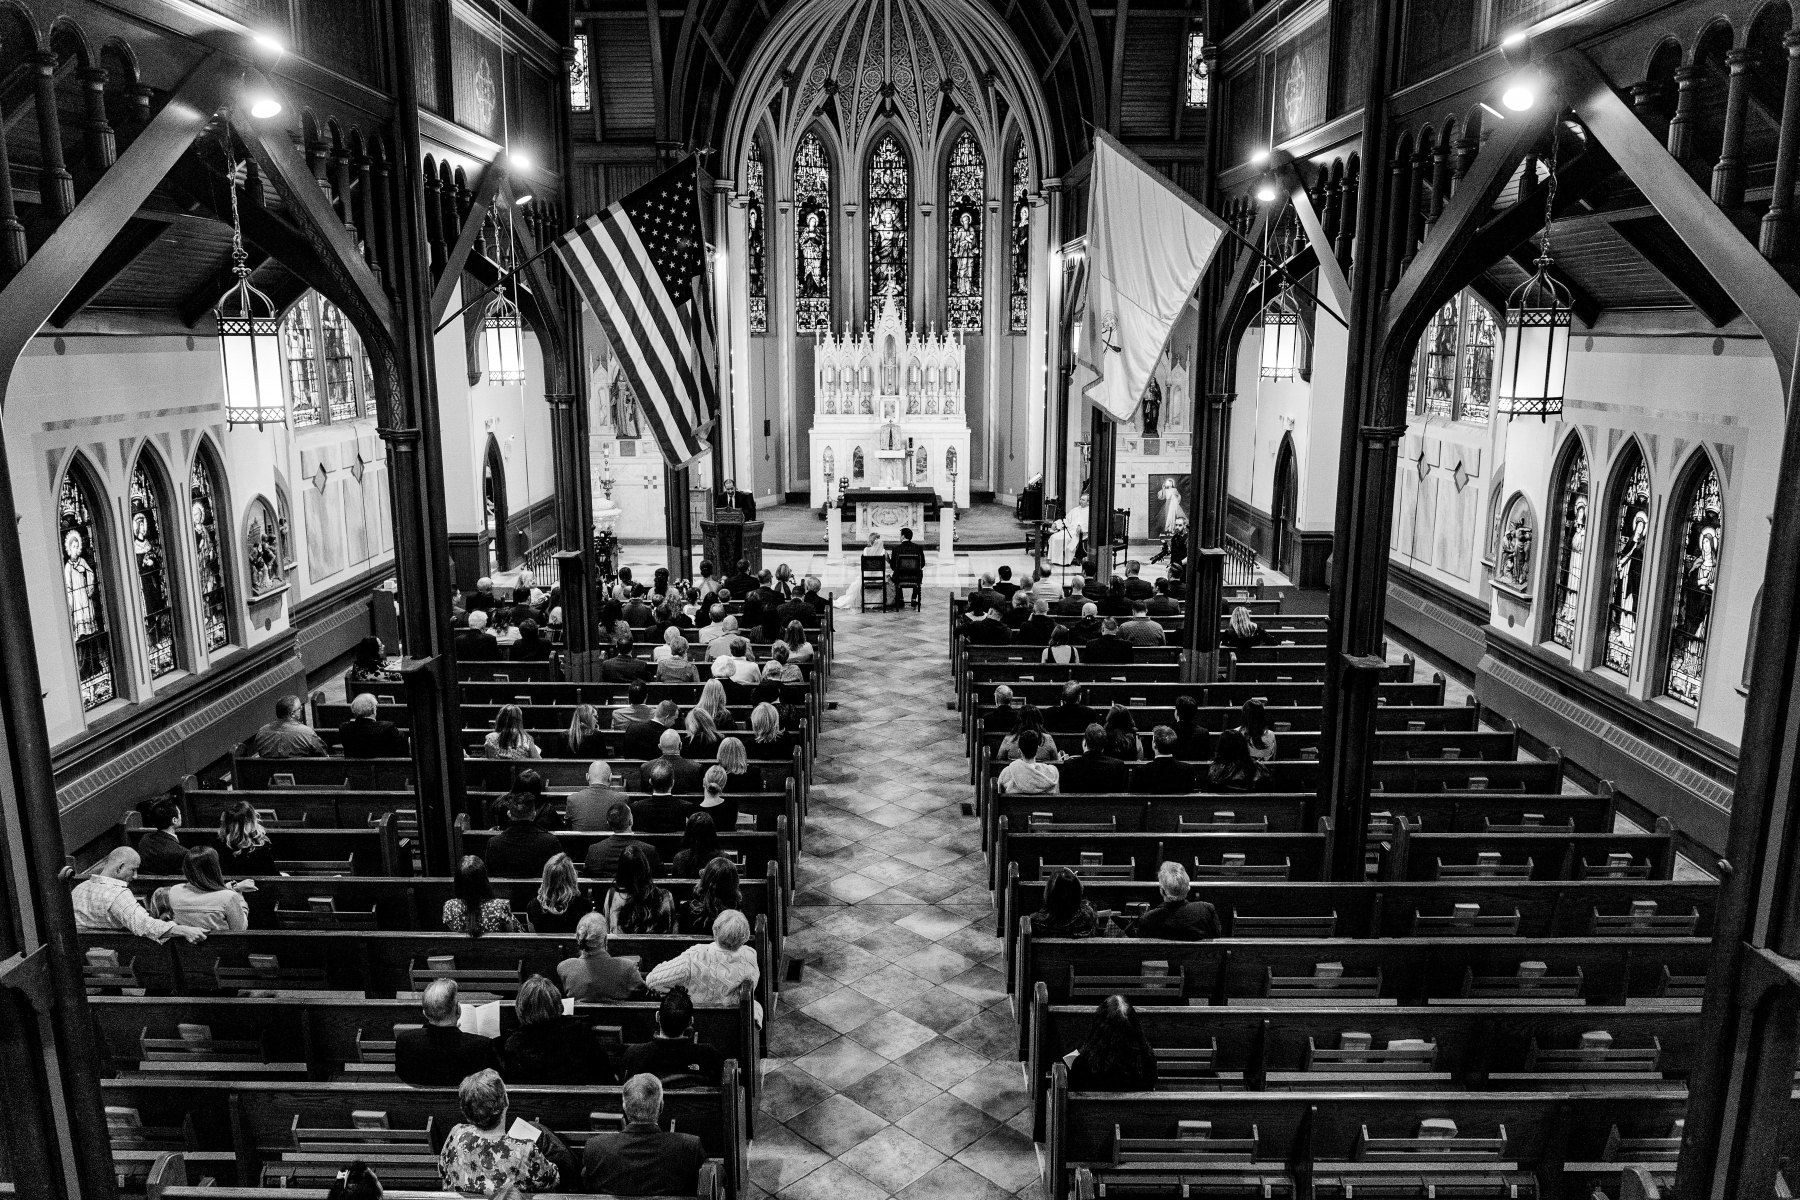 A wide shot of the ceremony shot from the balcony where the organist was playing.